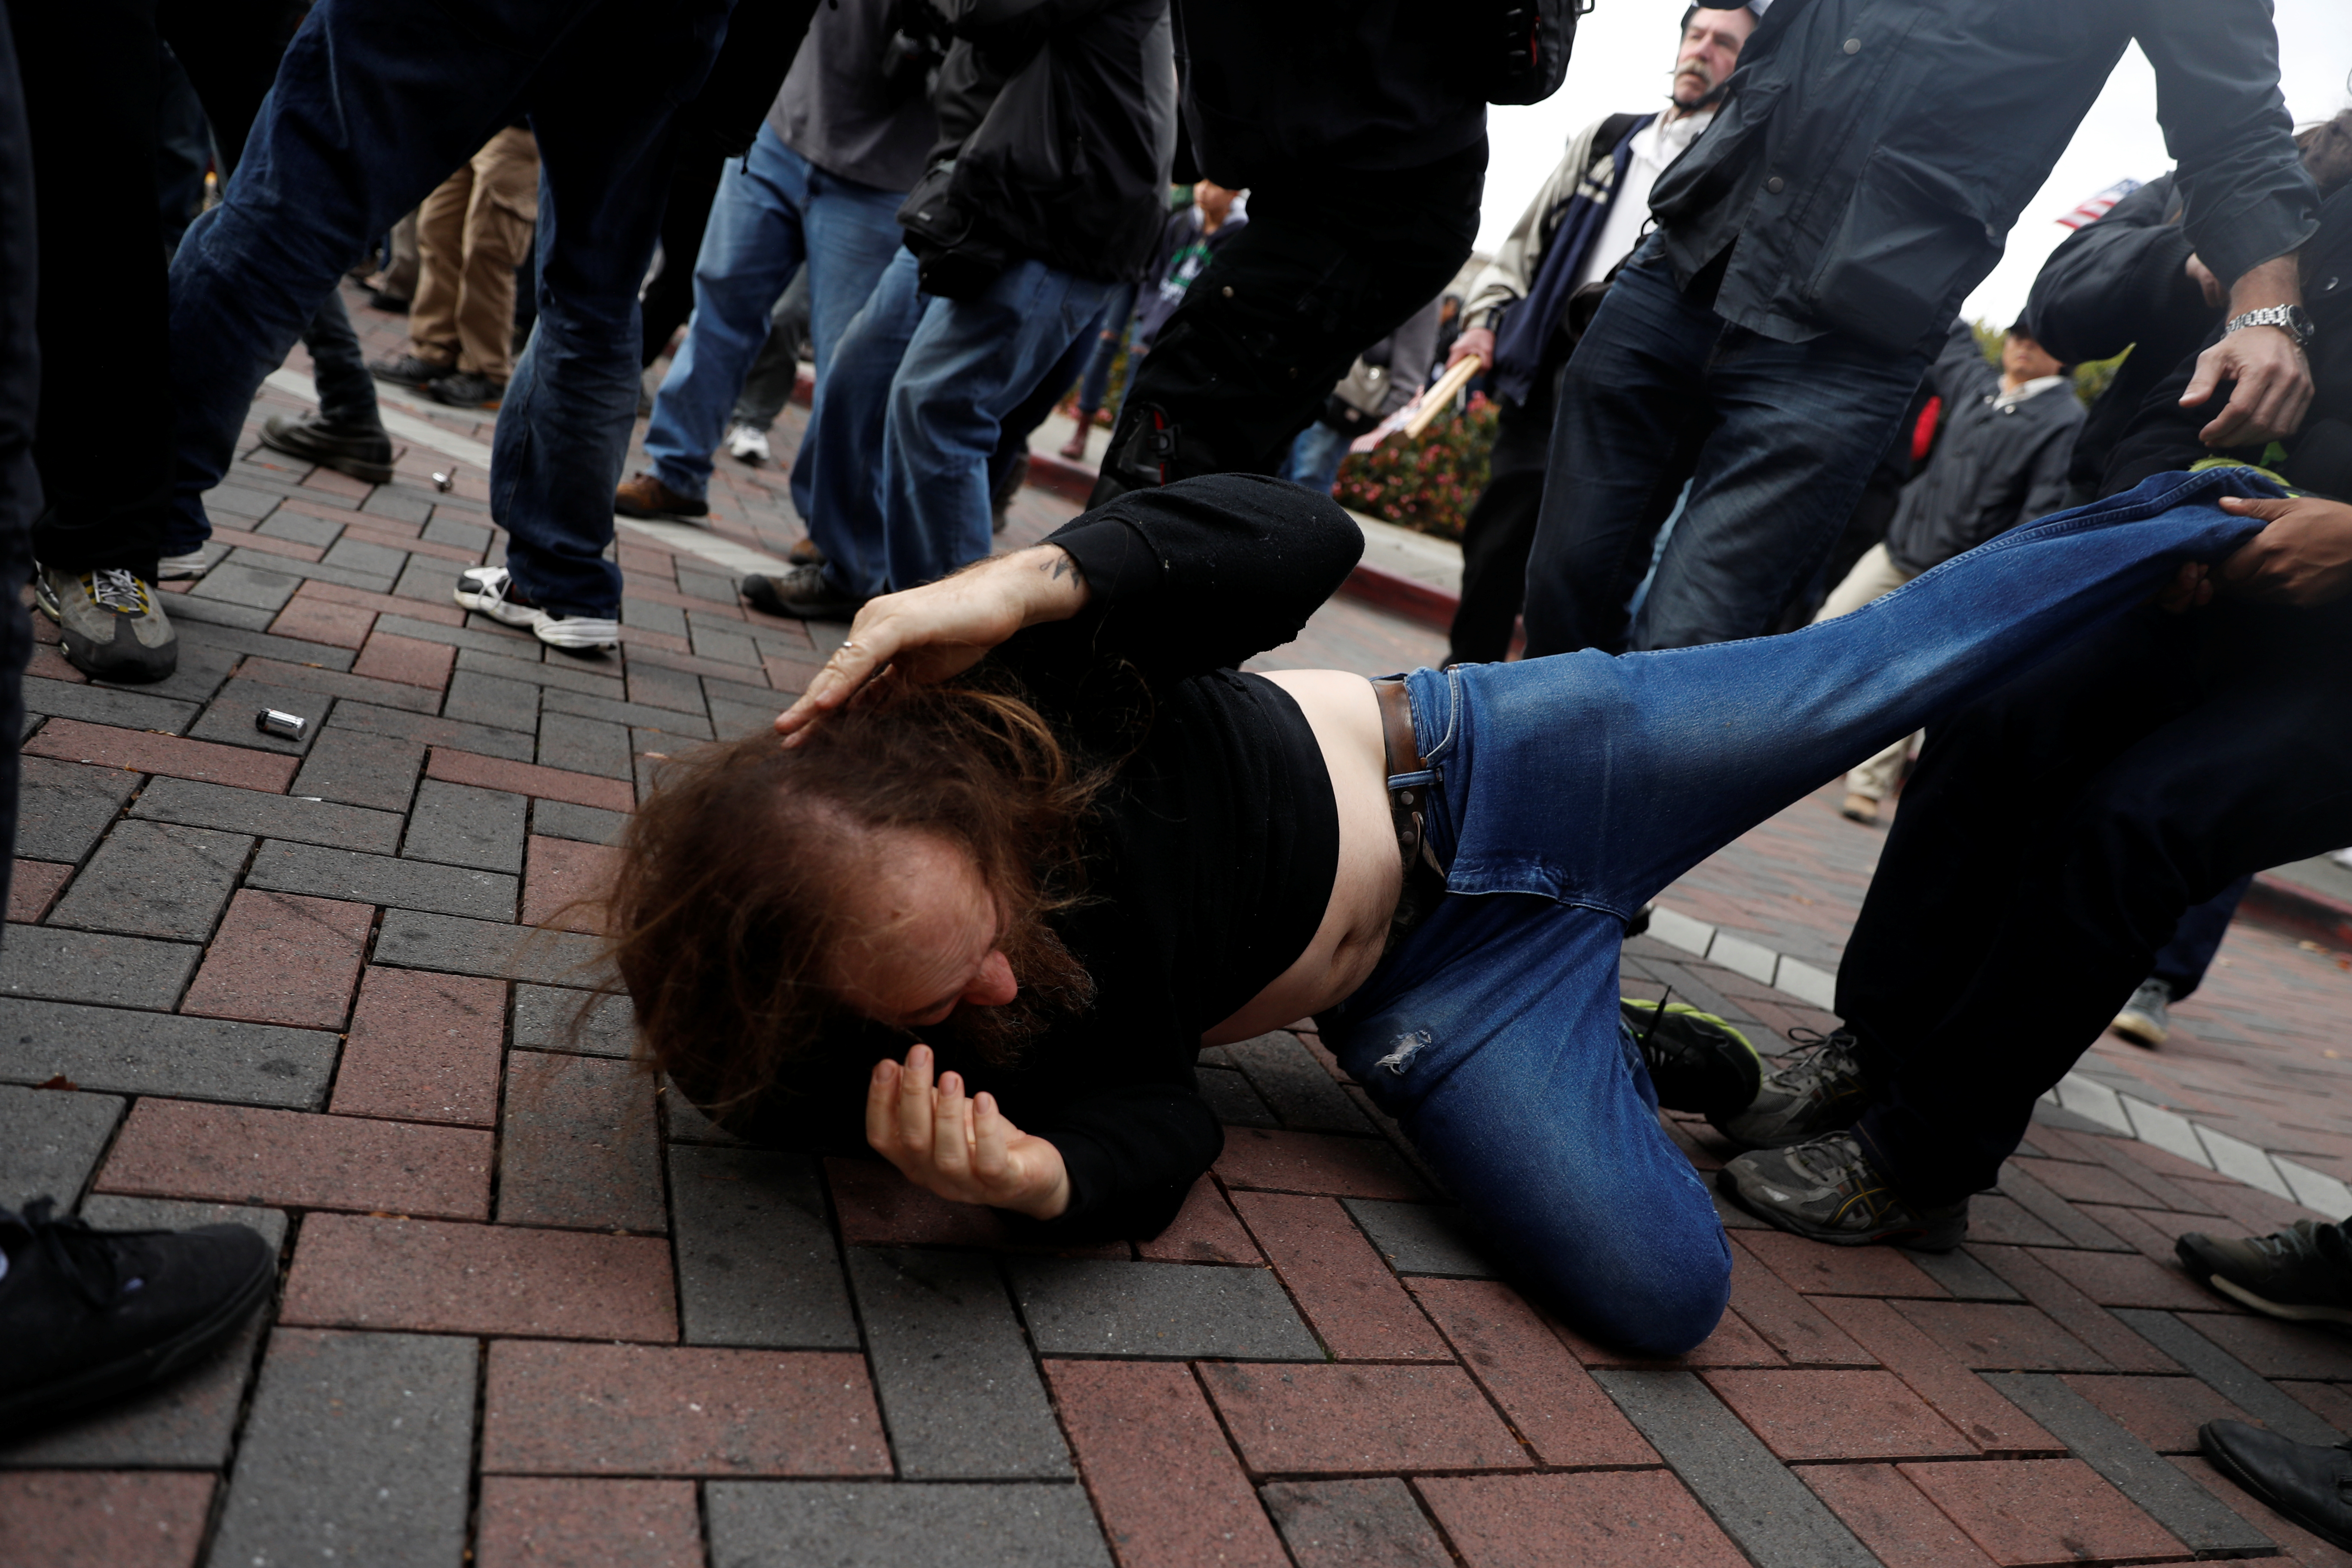 """A man is being pulled away from a scuffle as scattered fights broke out between supporters of U.S. President Donald Trump and counter-protestors during a """"People 4 Trump"""" rally in Berkeley, California"""